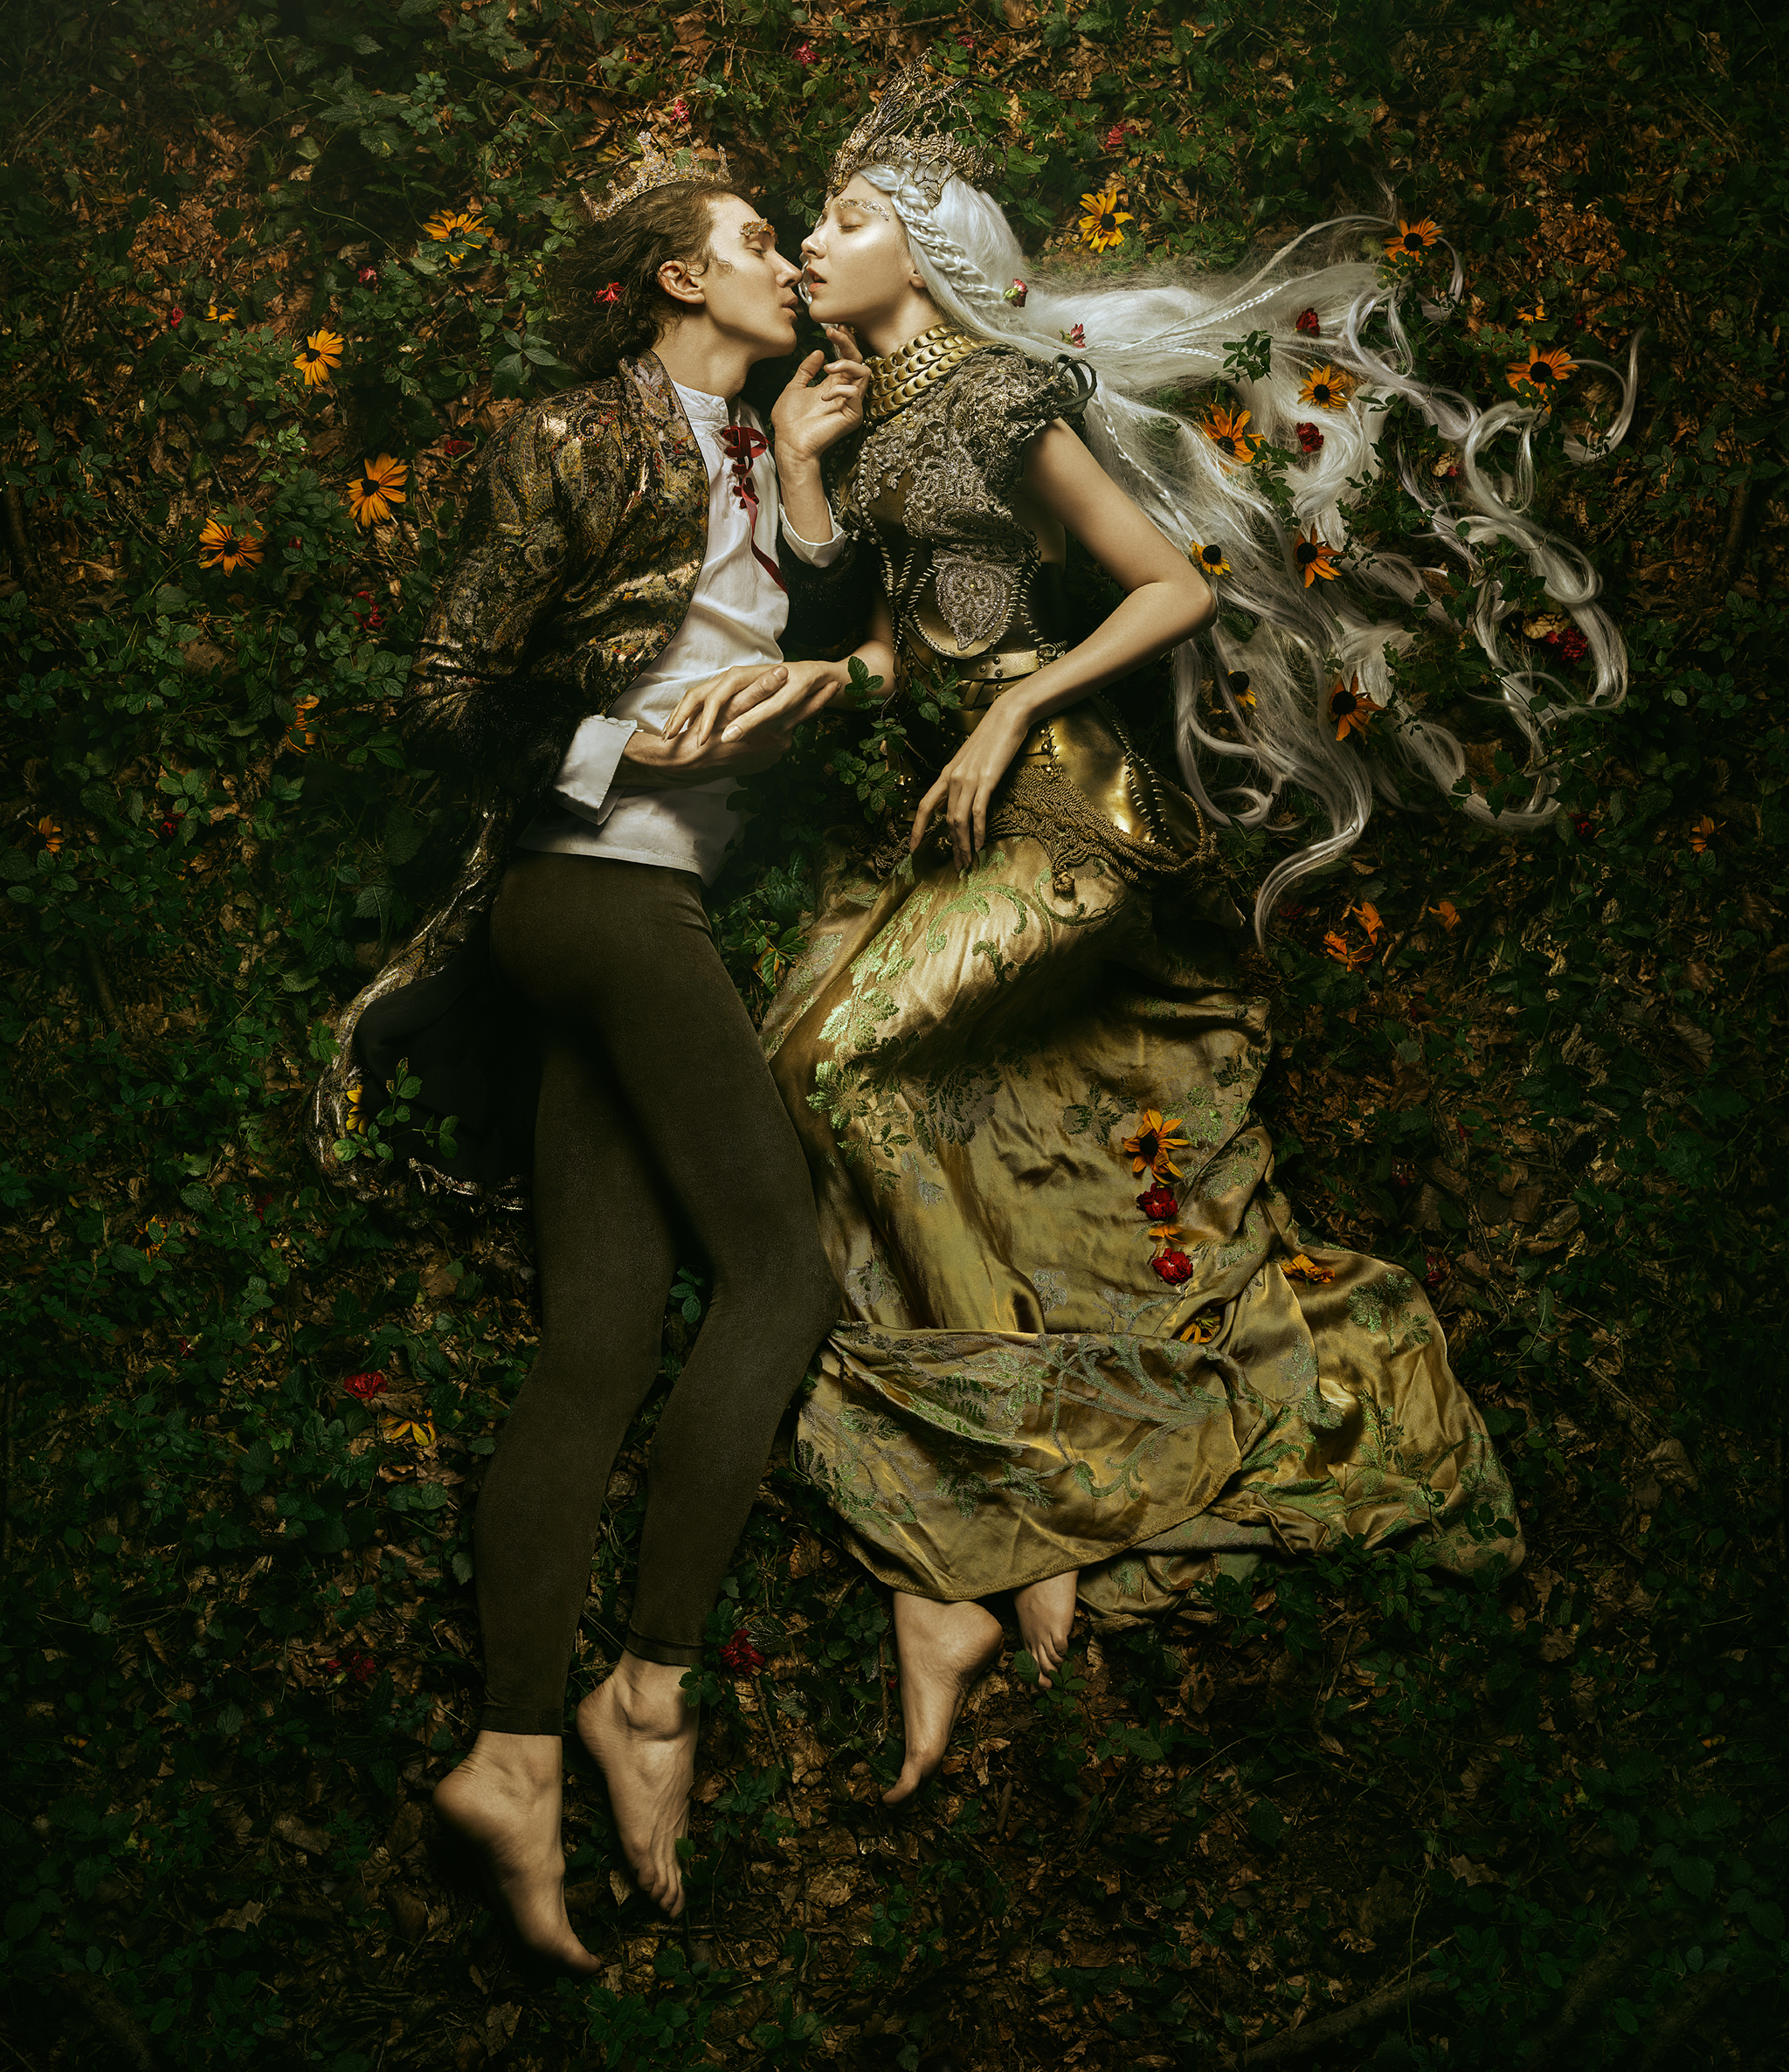 The Kiss   -   Bella Kotak.  Limited edition 70 x 100cm print - 1 of 3. £450 - print only. To order contact:  info@elementstudios.co.uk